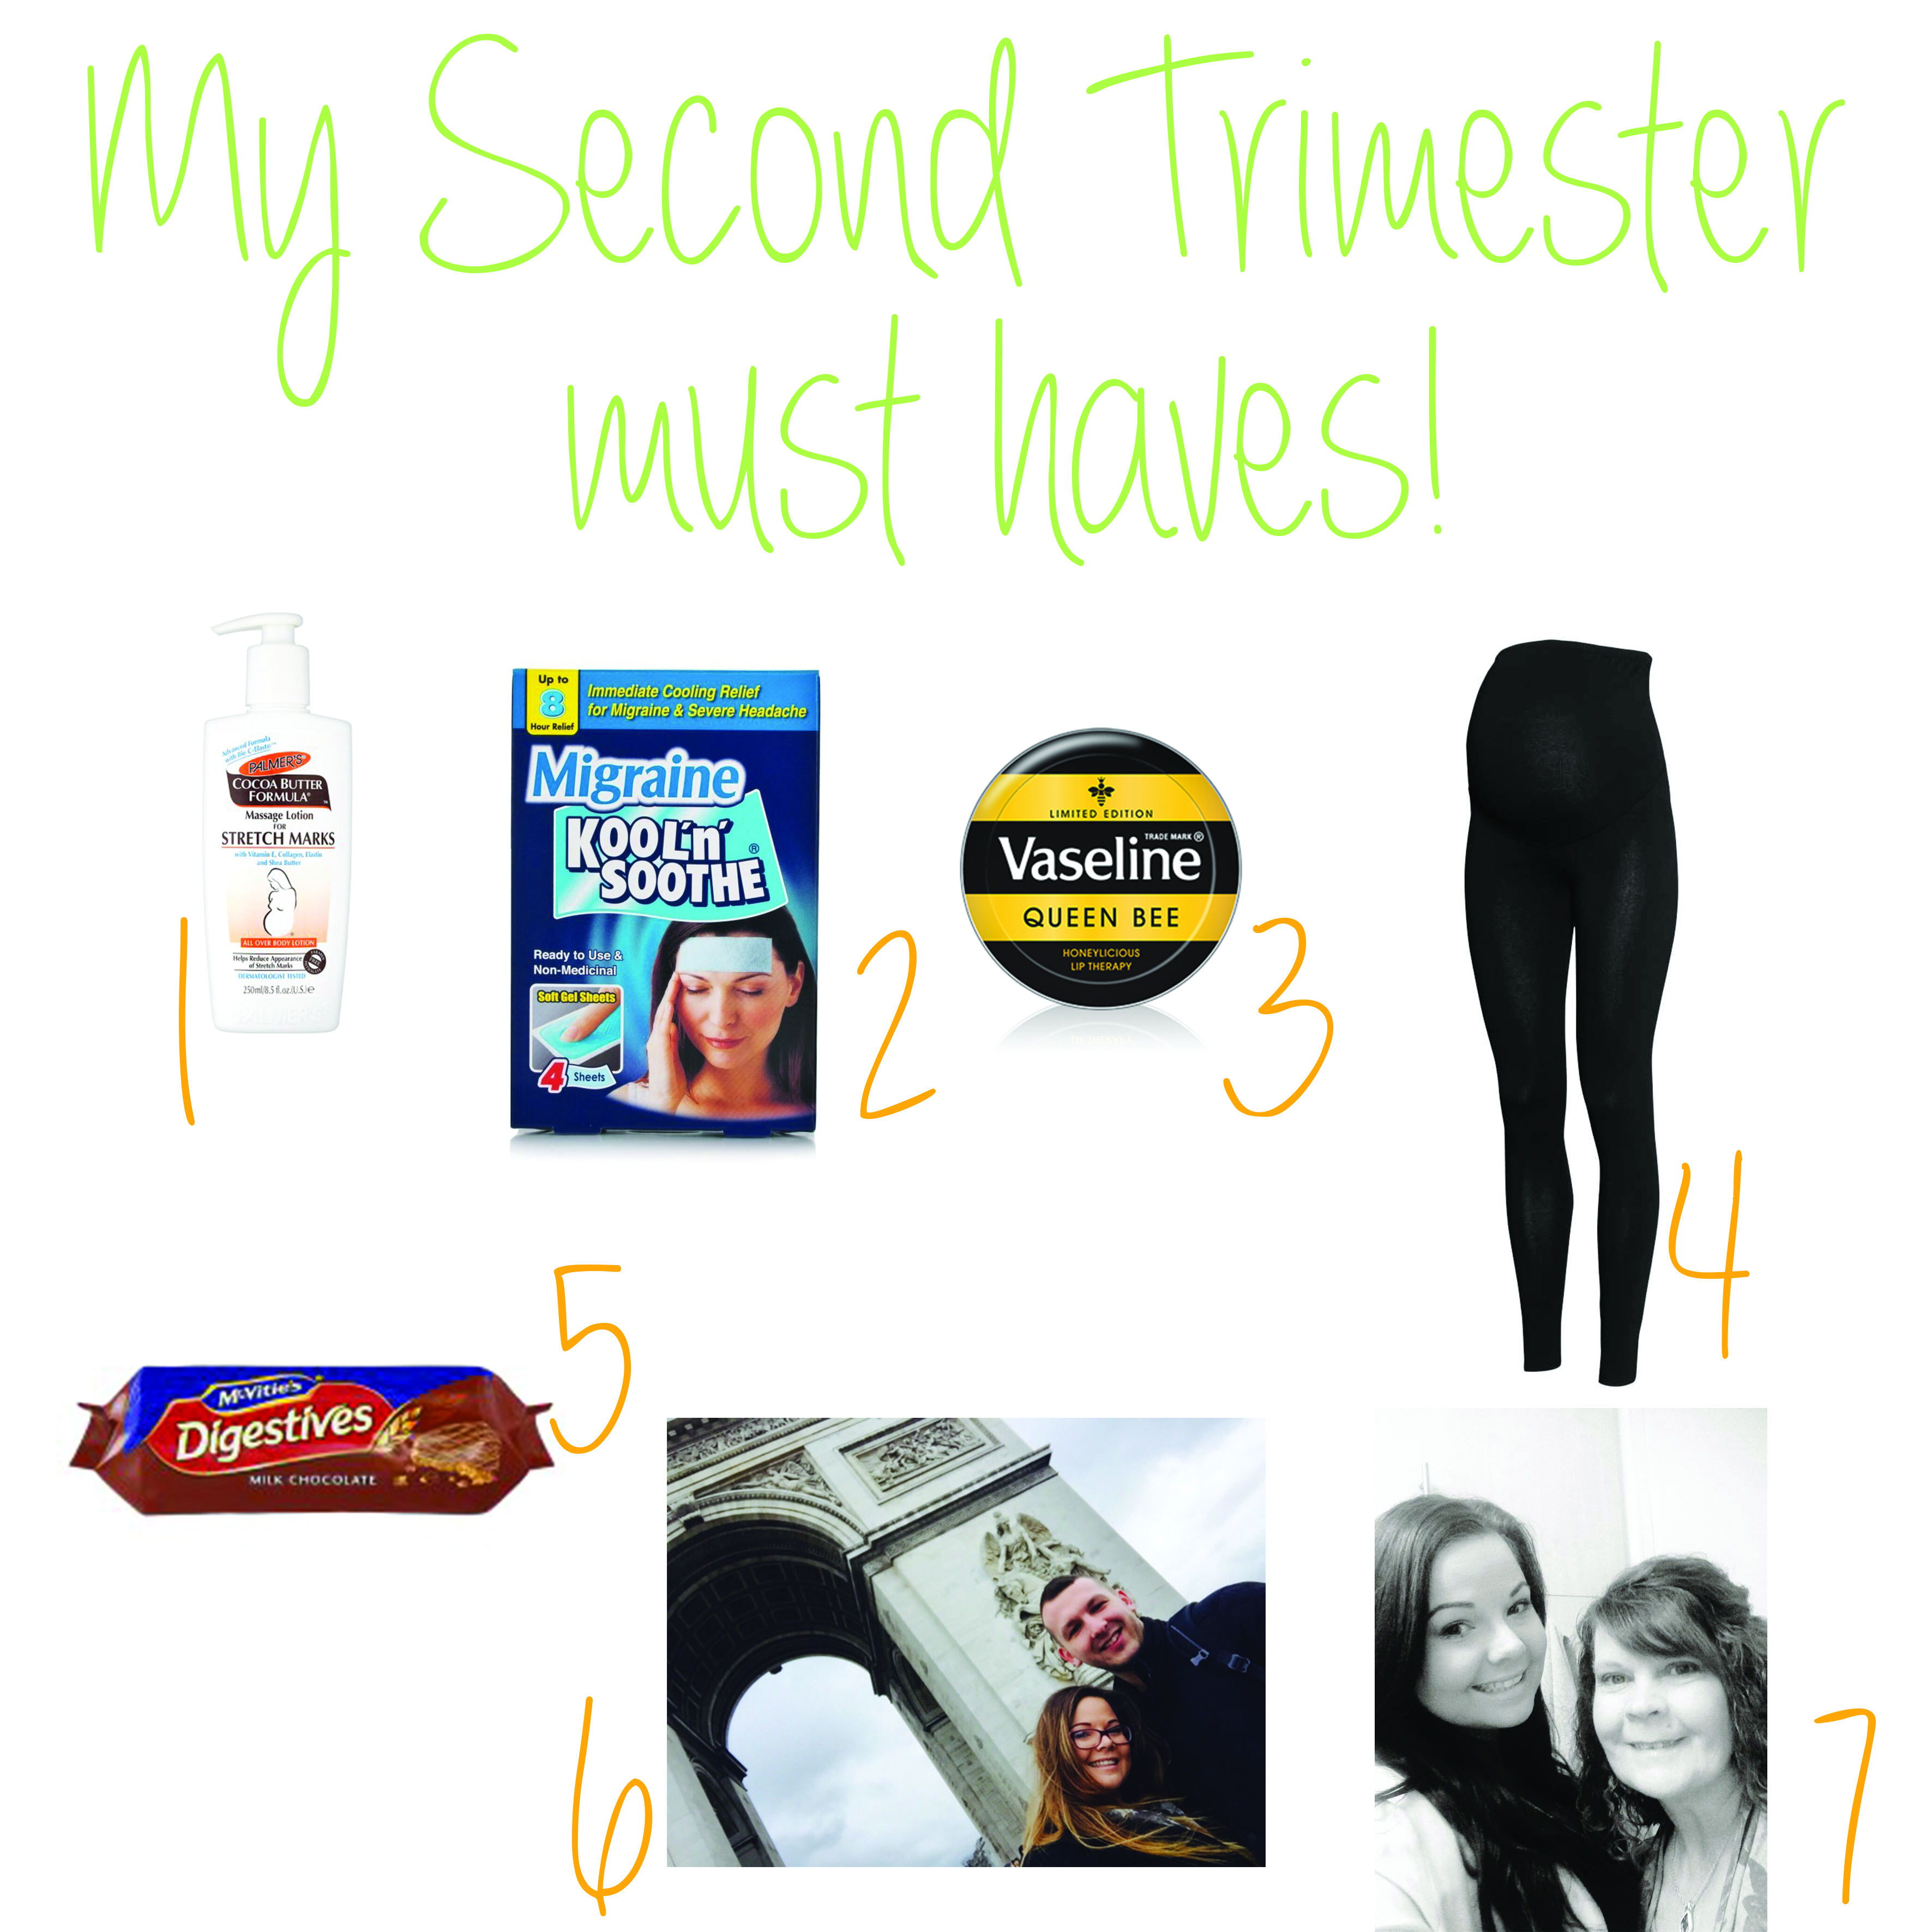 My second trimester must haves